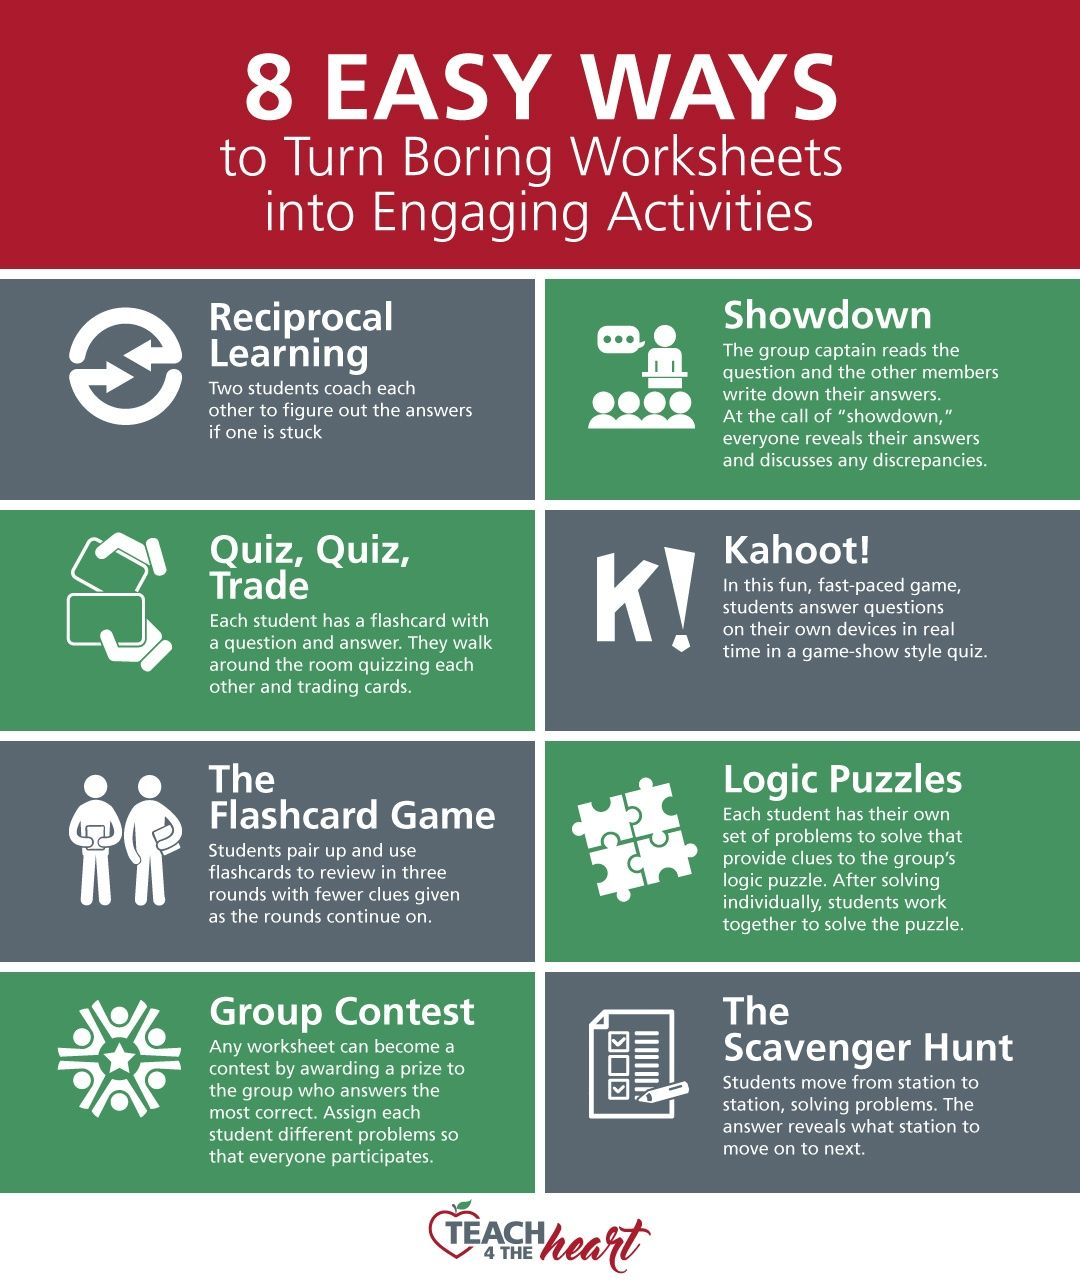 7 Easy Ways To Turn Boring Worksheets Into Engaging Activities In